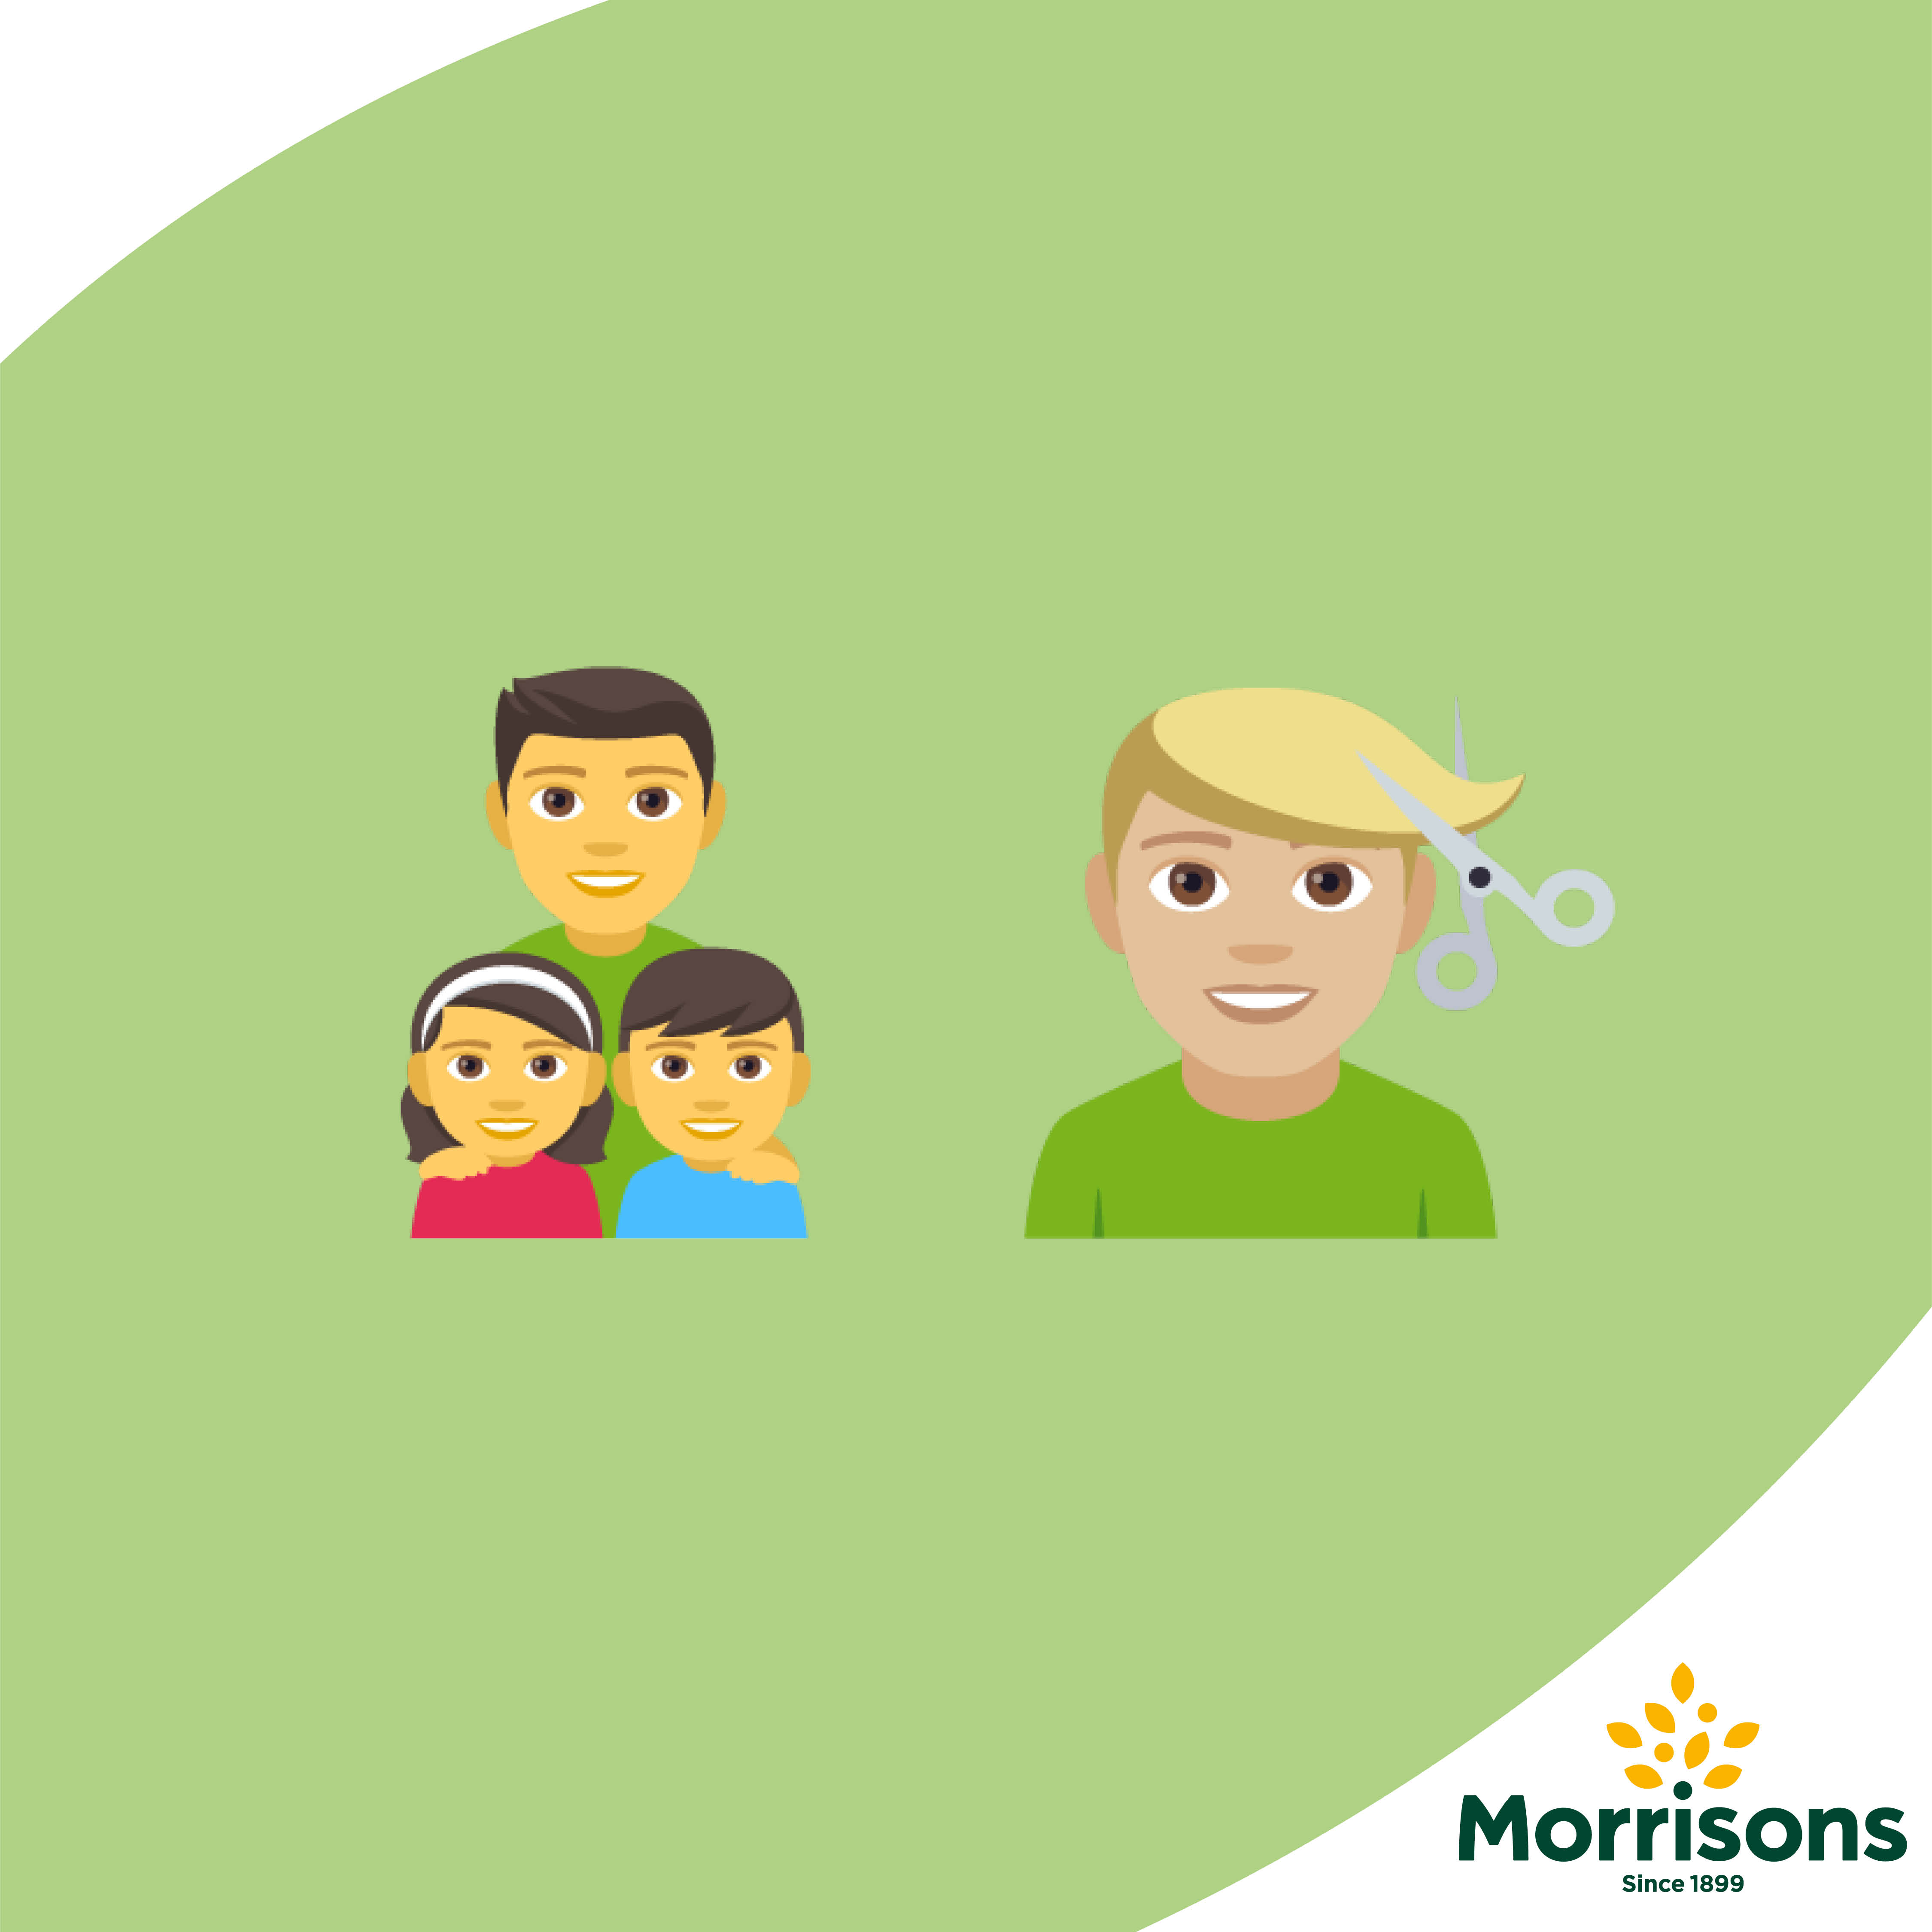 World Book Day for Morrisons